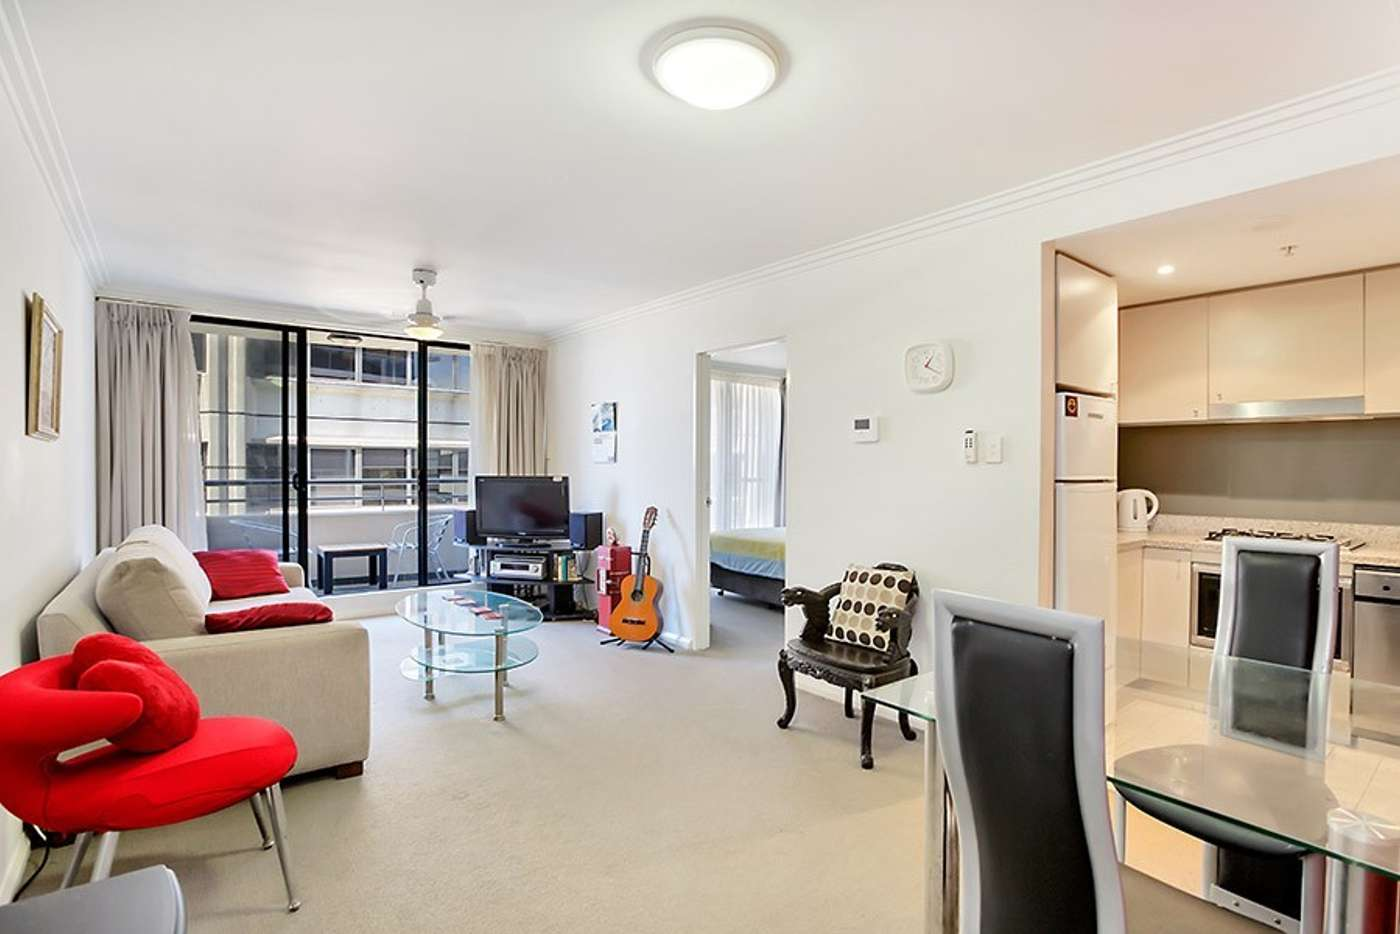 Main view of Homely apartment listing, 1219/1 Sergeants Lane, St Leonards NSW 2065